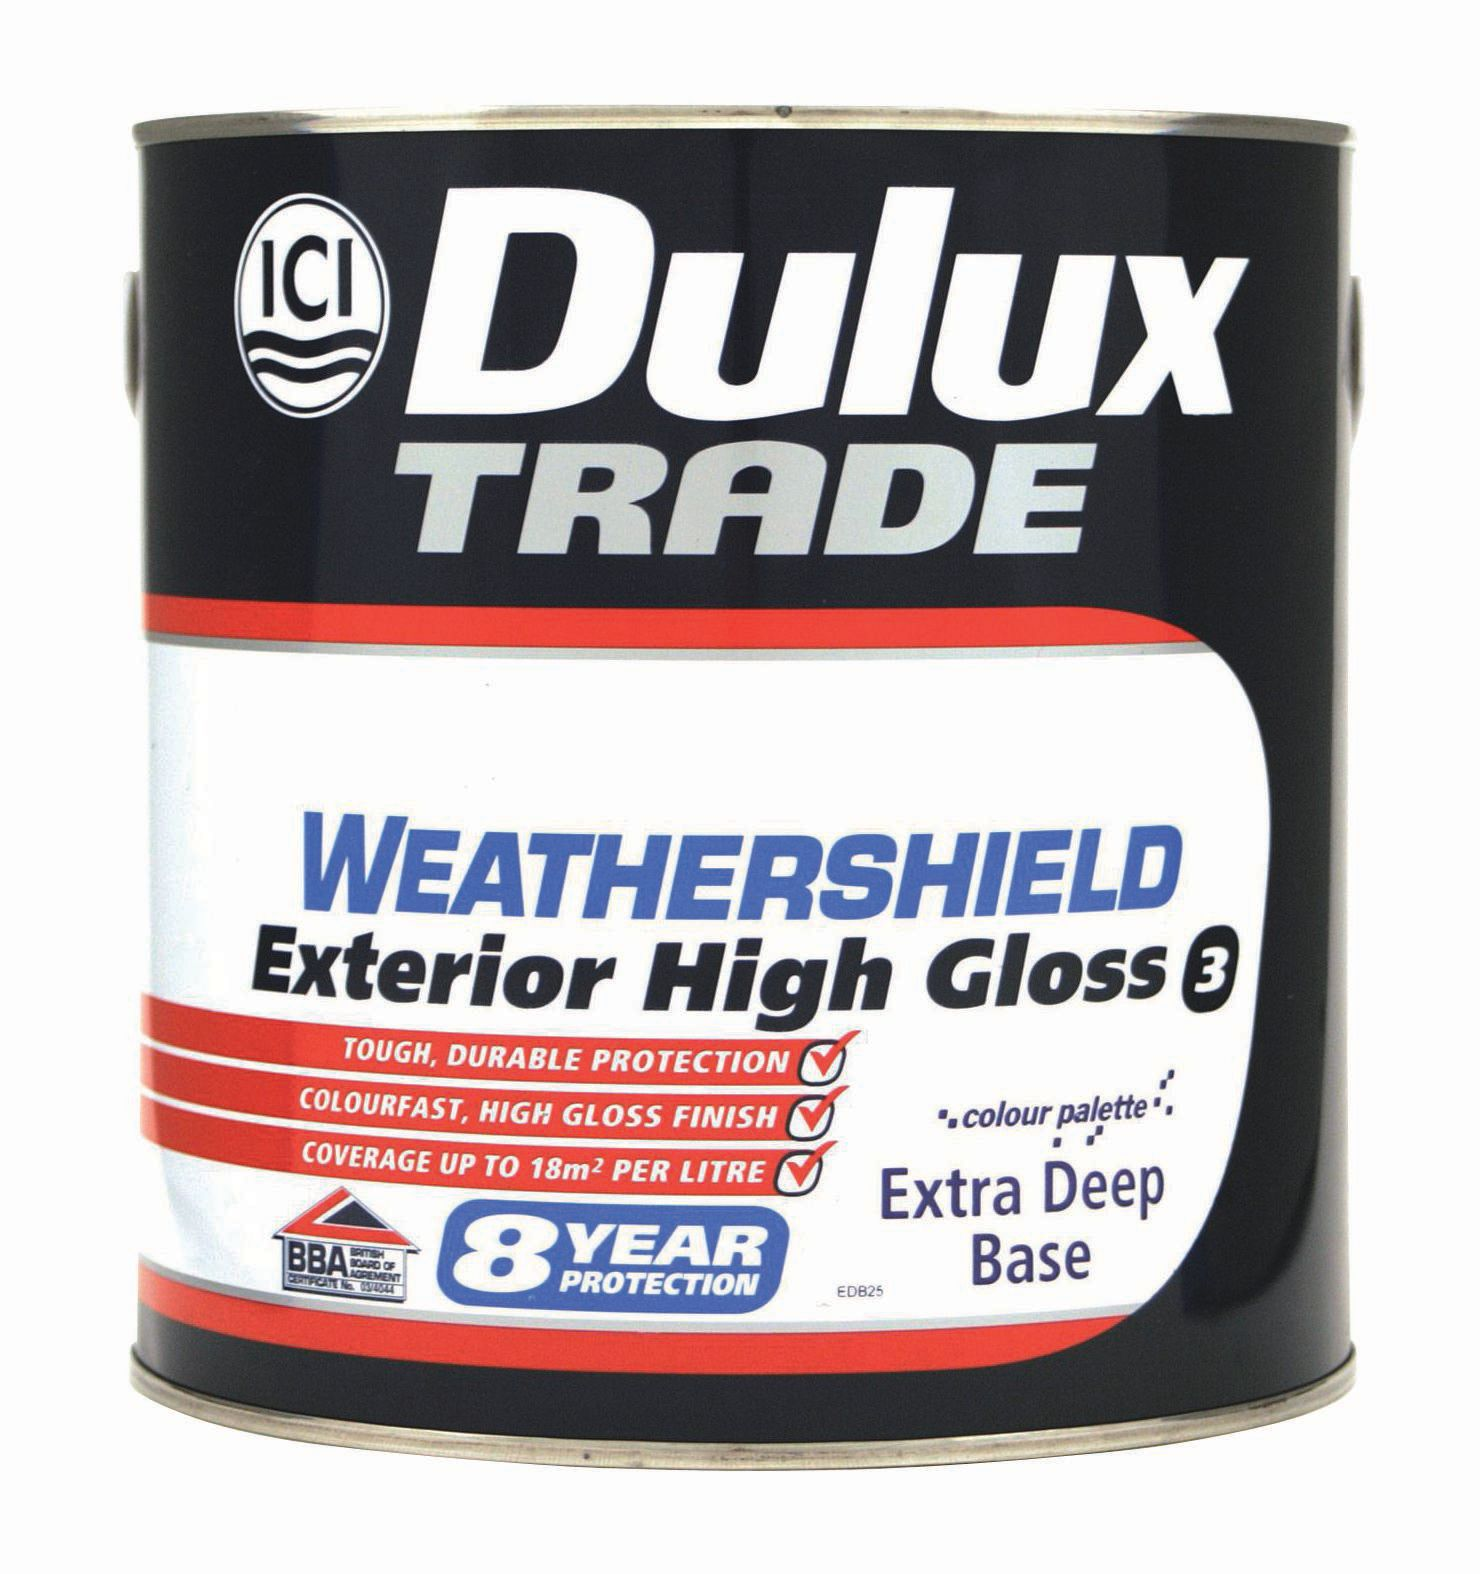 Dulux weathershield exterior extra deep base gloss wood paint 2 5l departments diy at b q - Dulux exterior gloss paint style ...